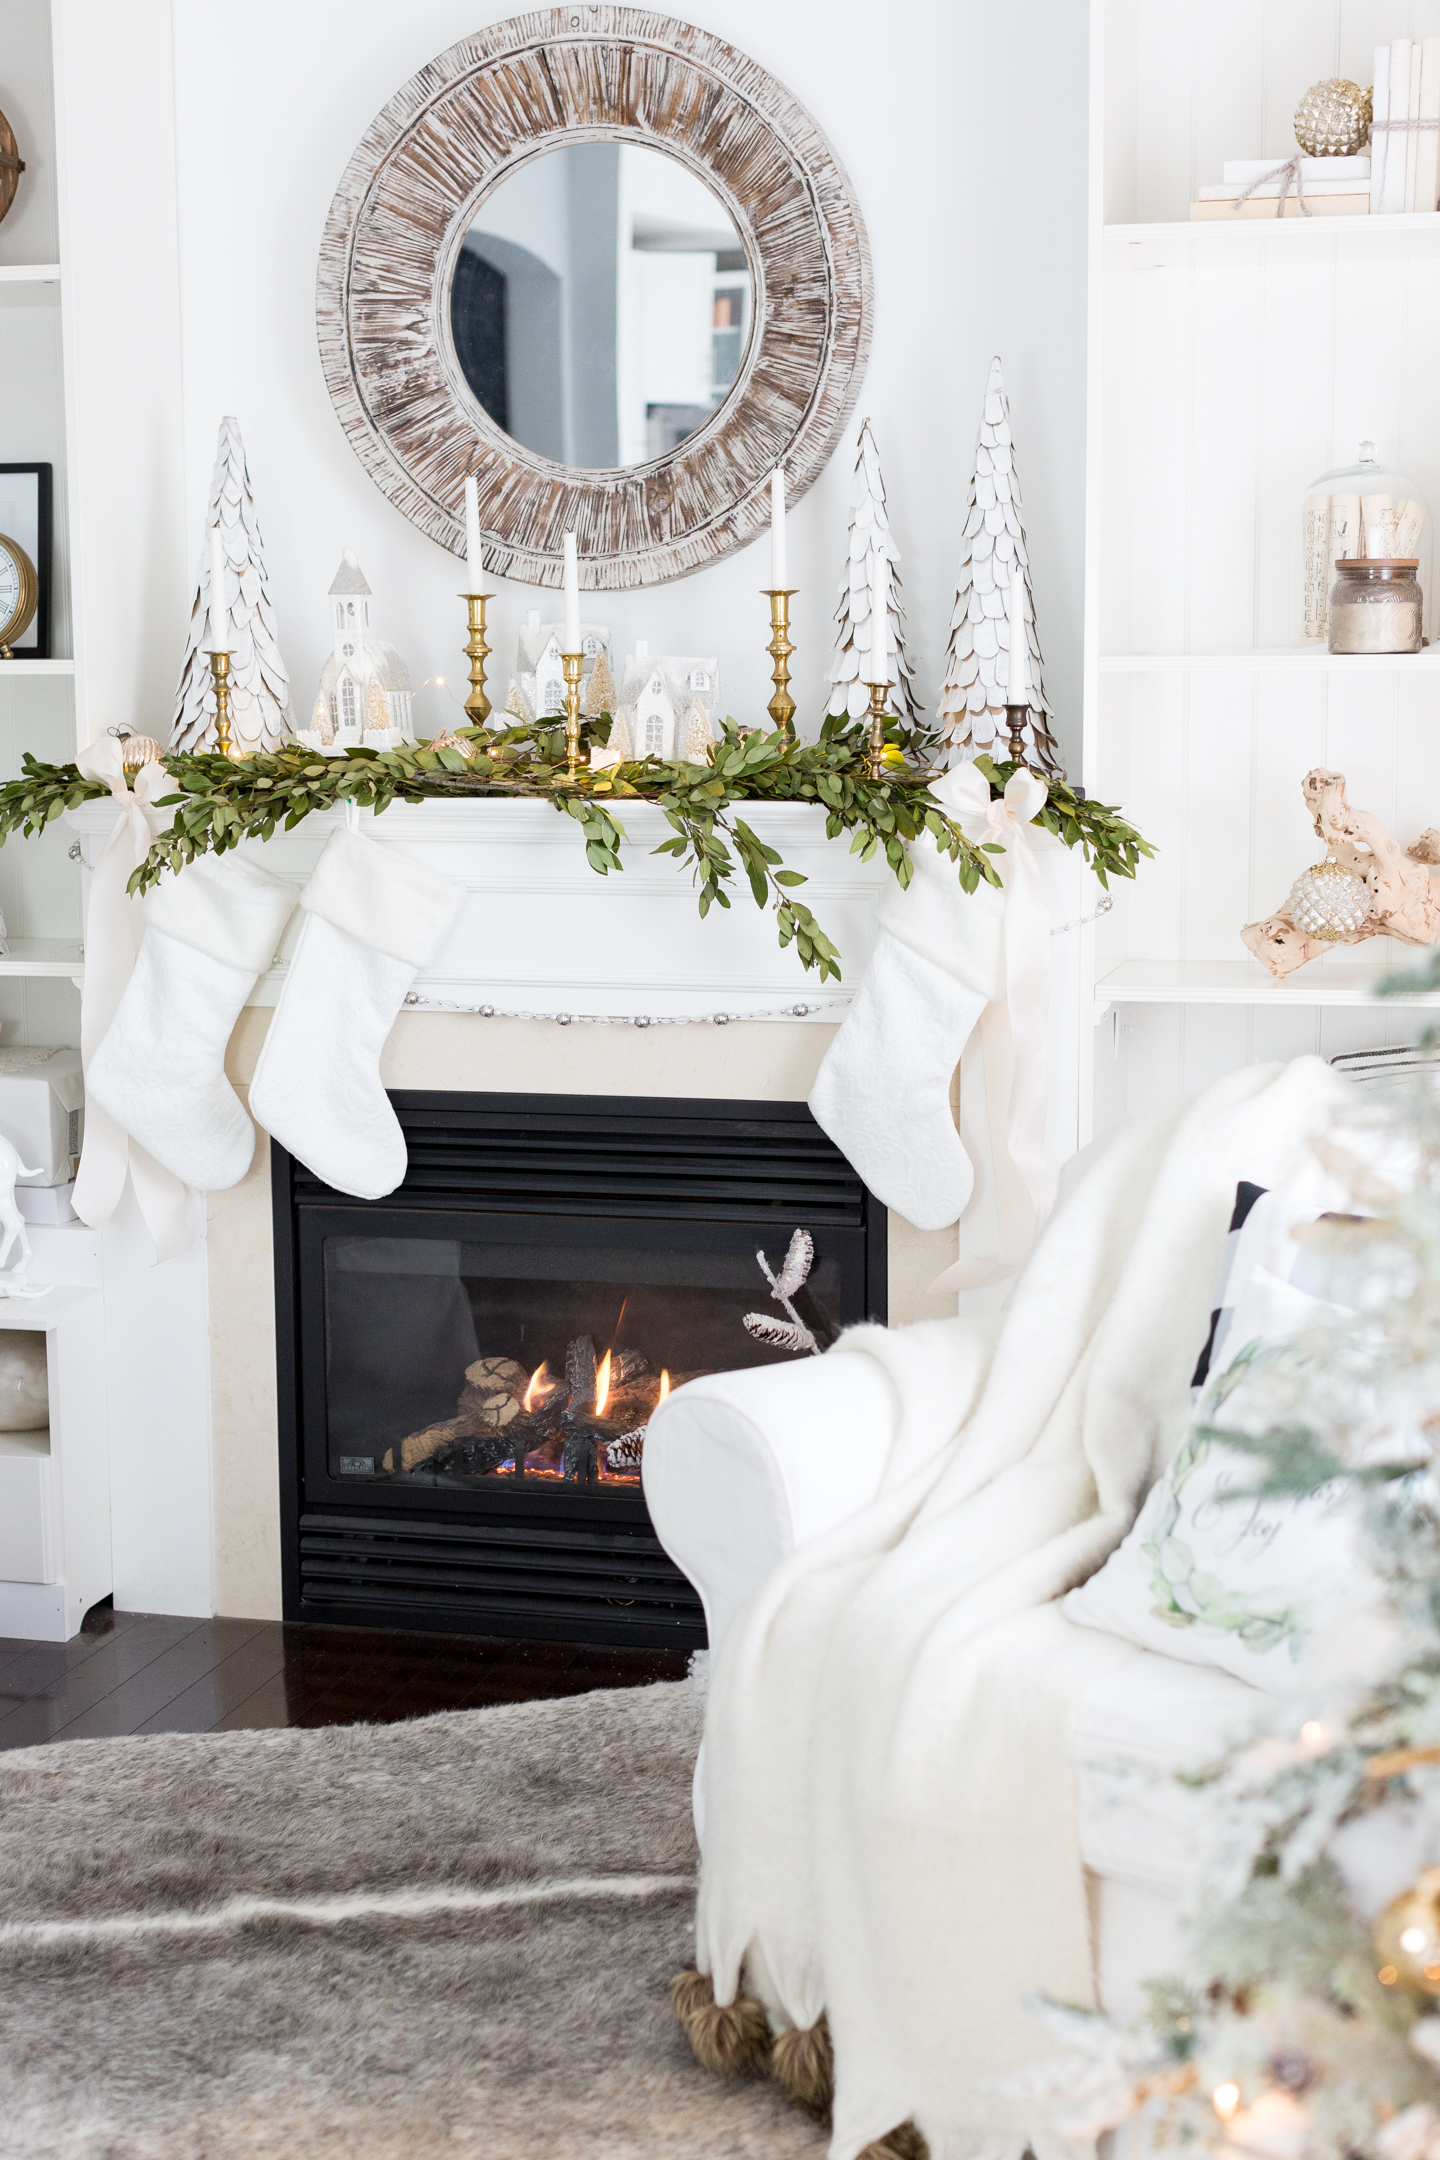 Luxury Christmas Decorations You Should be Using luxury christmas decorations Luxury Christmas Decorations You Should be Using Luxury Christmas Decorations You Should be Using 3